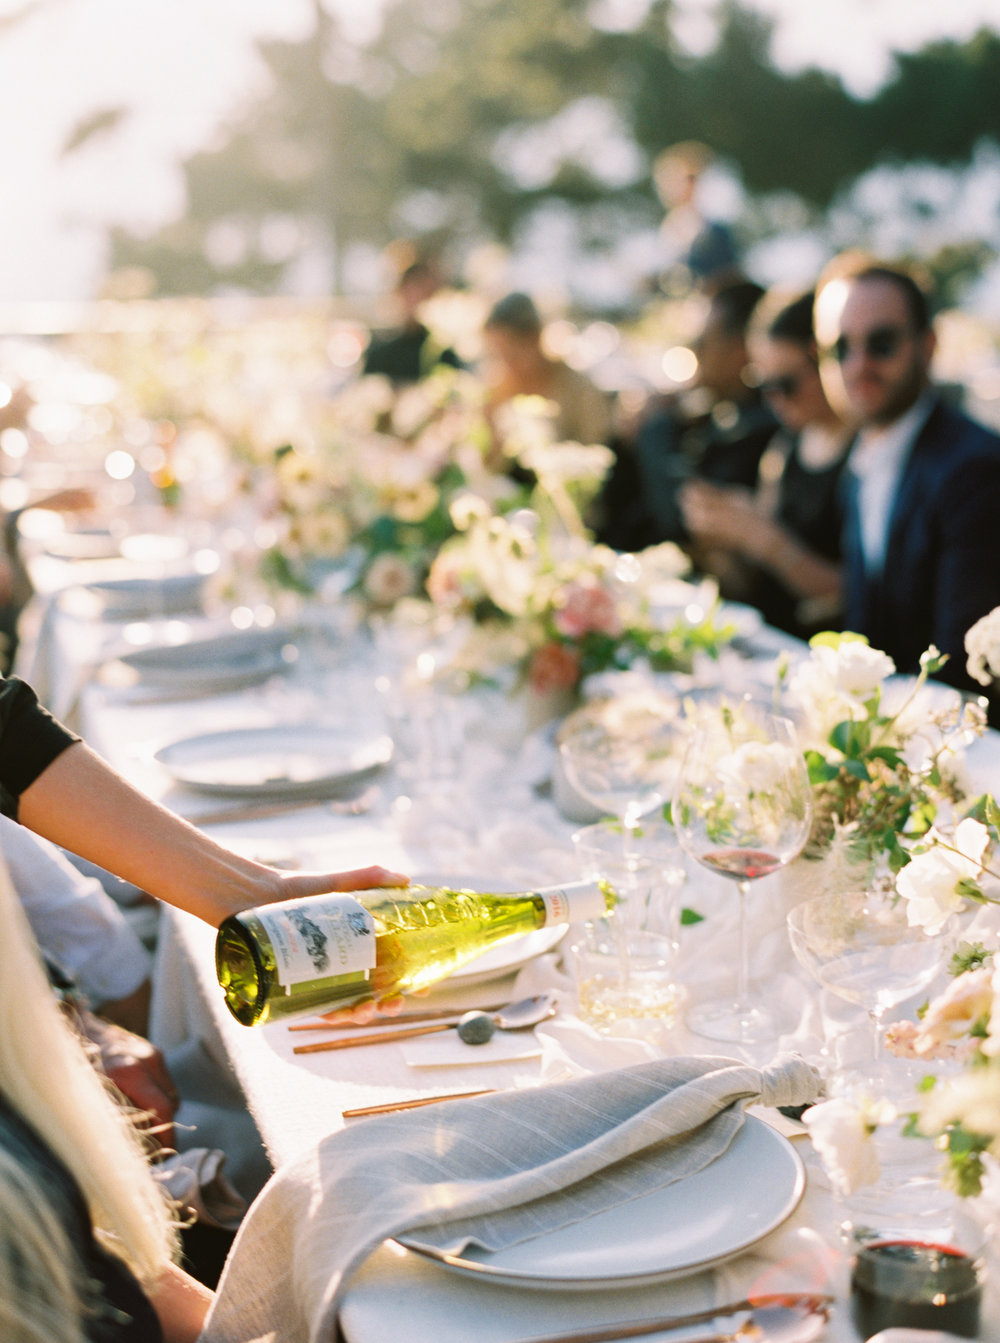 12th-Table-BIG-SUR-WEDDING-Erich-McVey-18